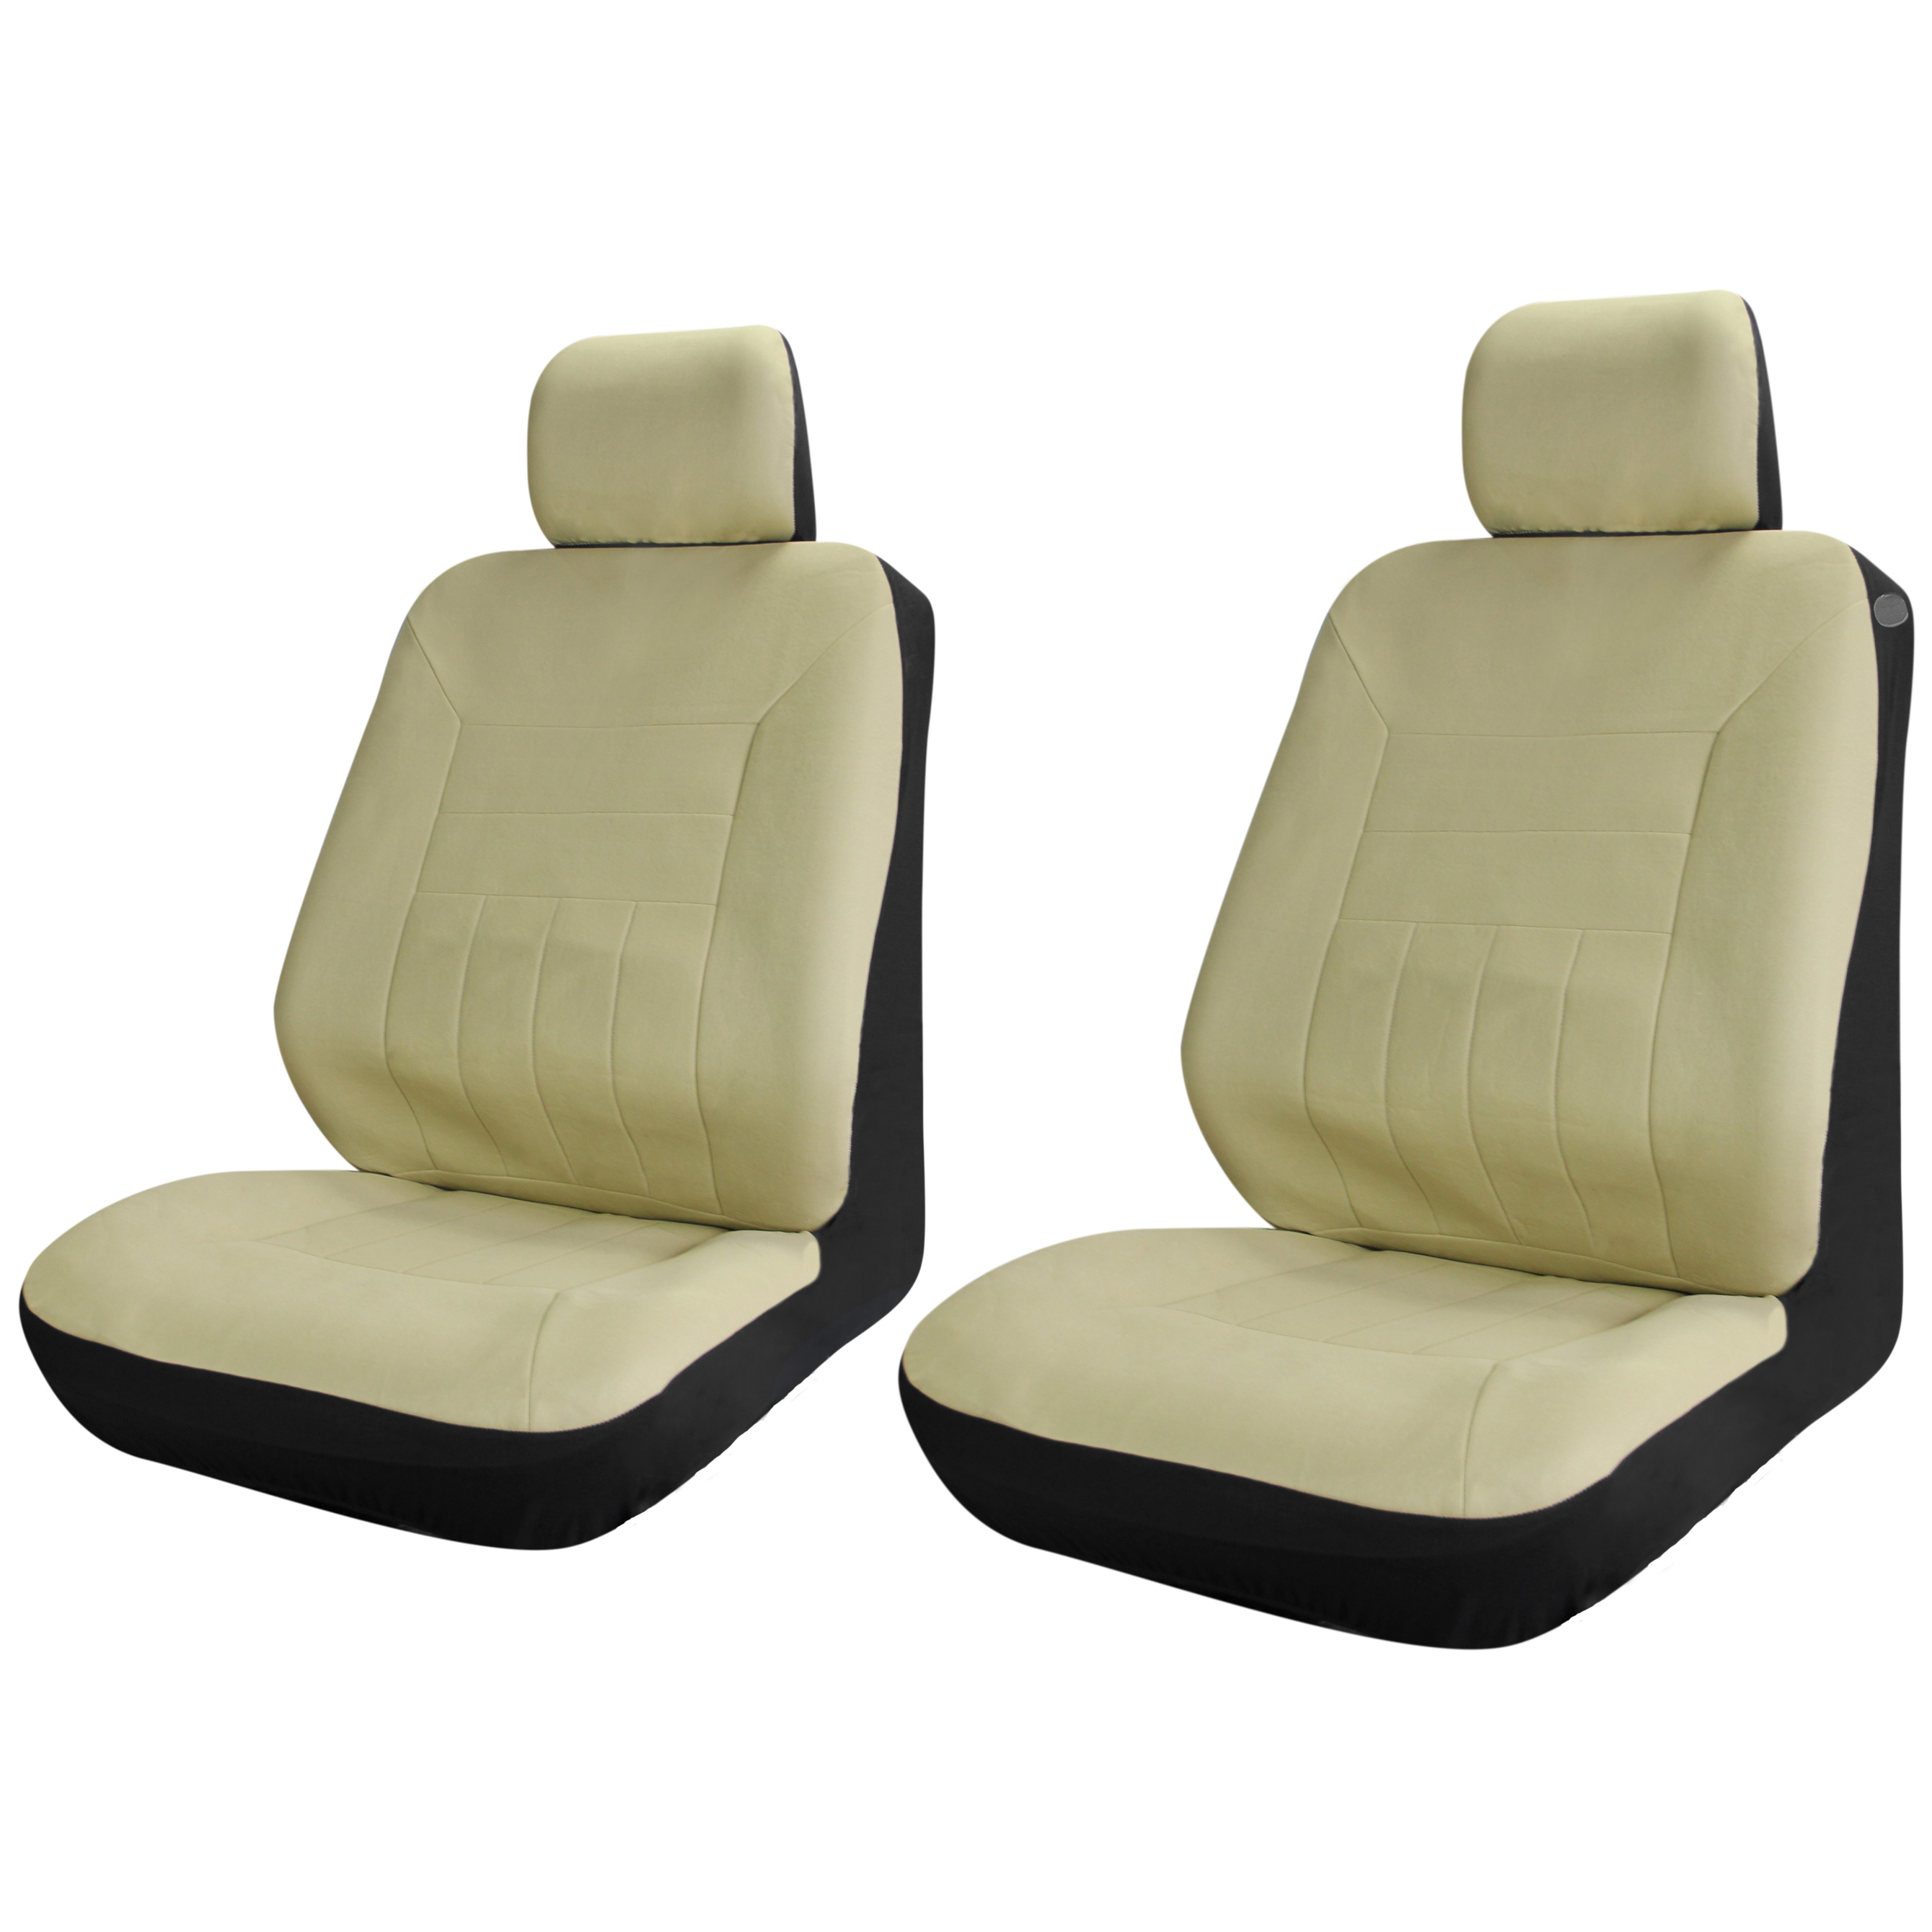 SUV Truck Van Seat Covers Solid Beige Tan 6pc Set For